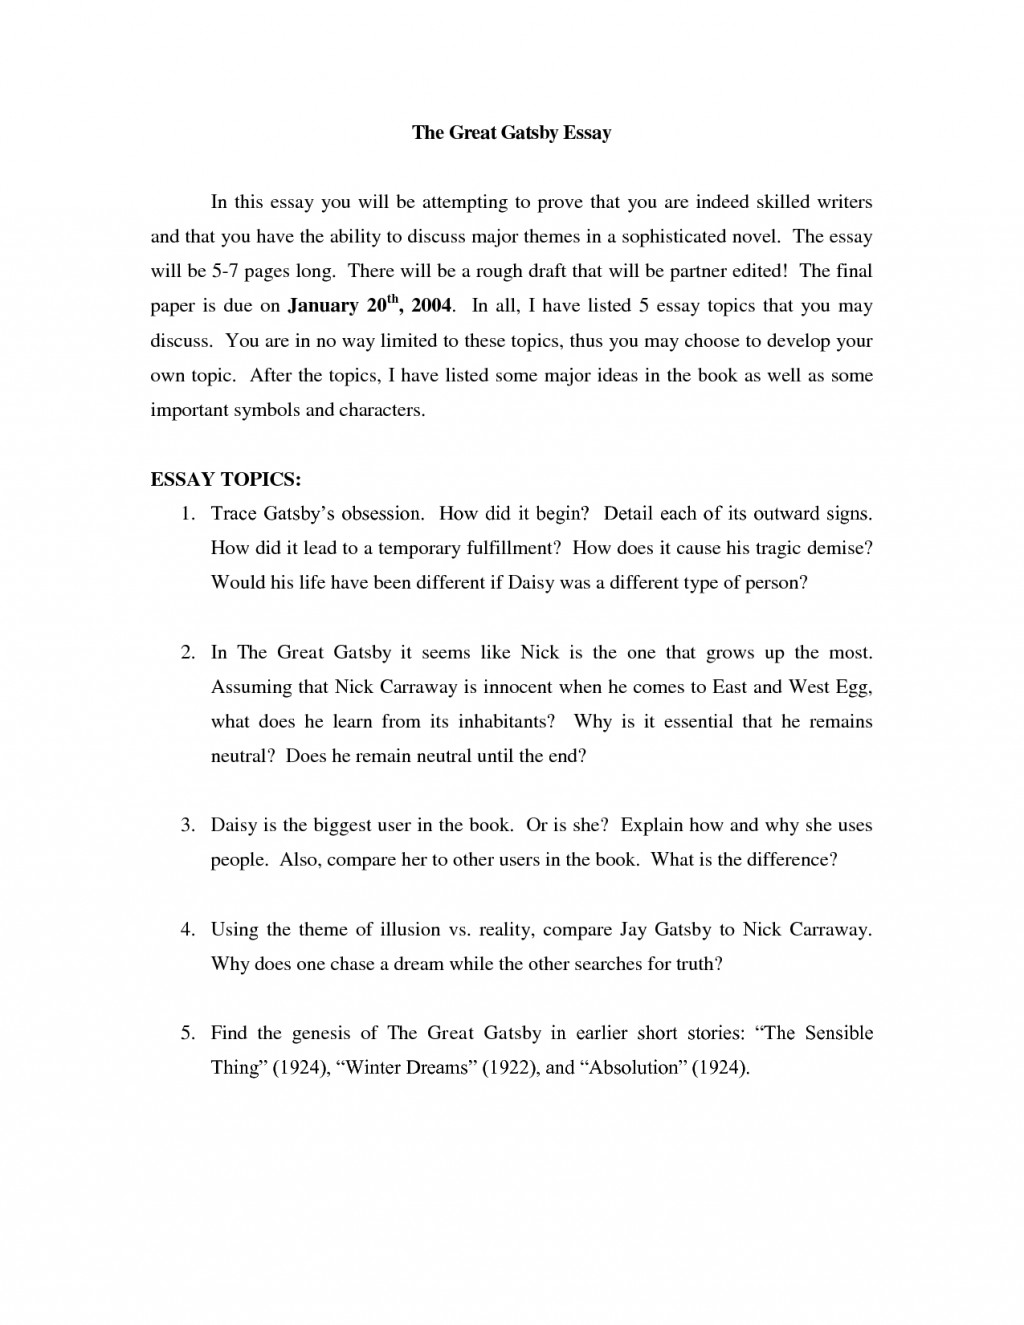 003 Essays On Cyber Bullying Best English Essay I Need An Trees Thesis Statement For The Great Gatsby Template 4ni Argumentative Topics Persuasive About Cyberbullying Unique Pdf Large